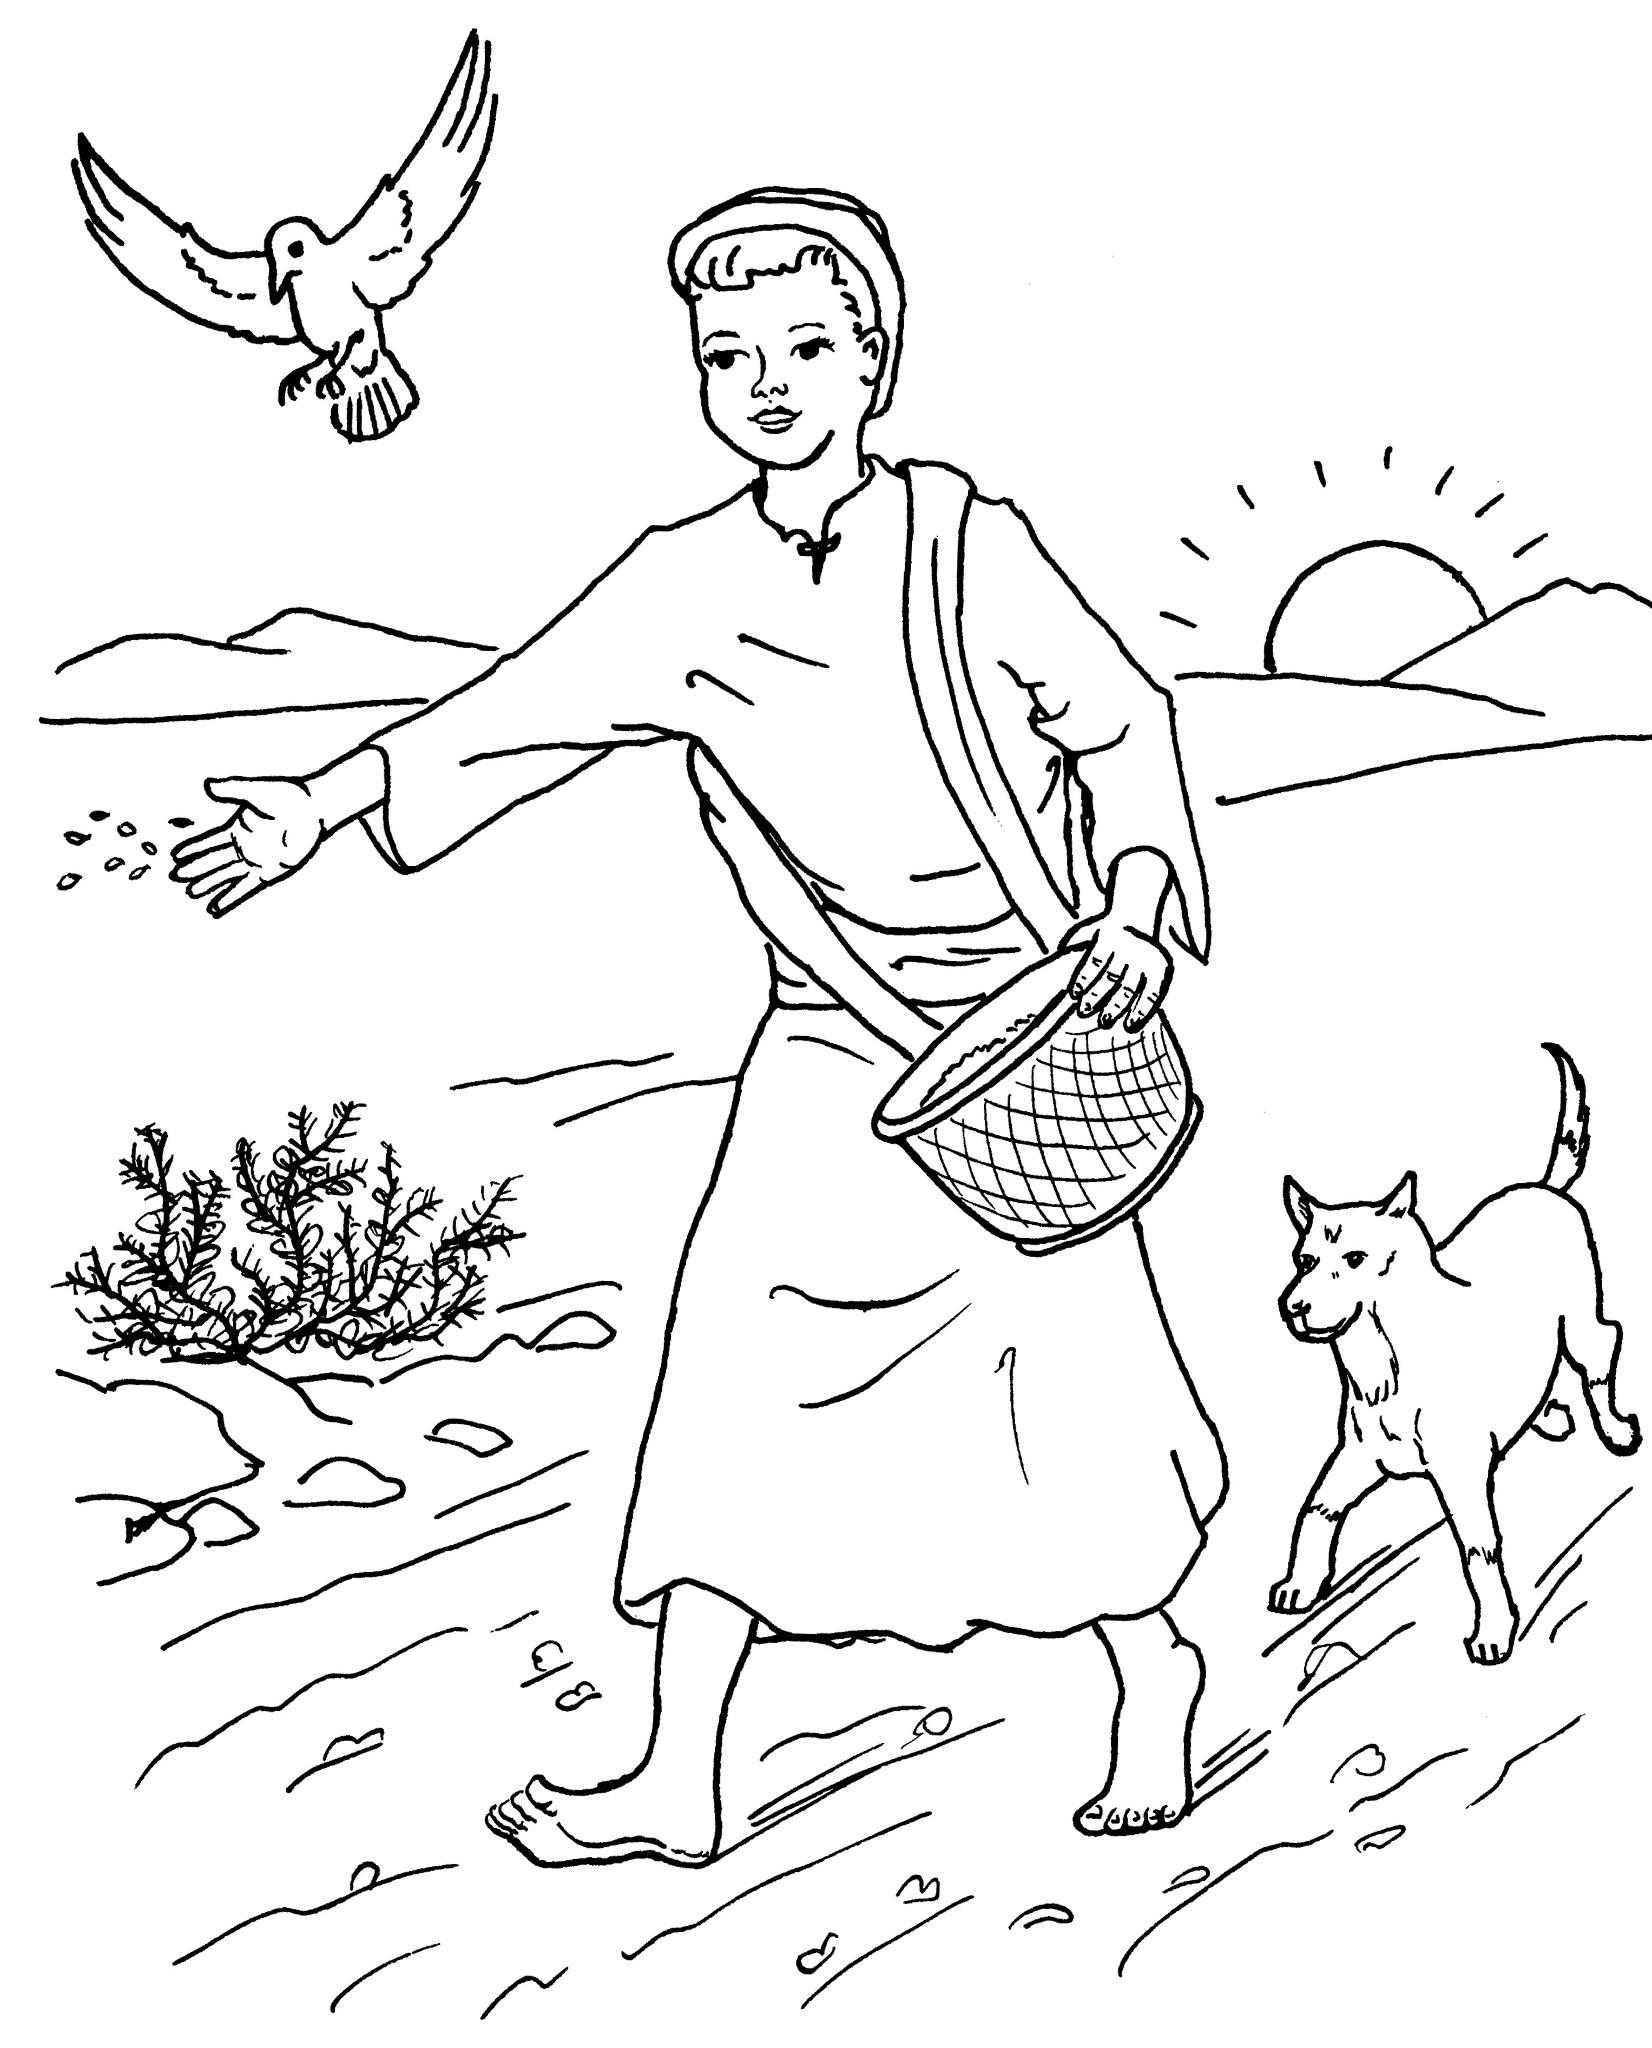 Free parable of the rich fool coloring pages for Parable of the rich fool coloring page